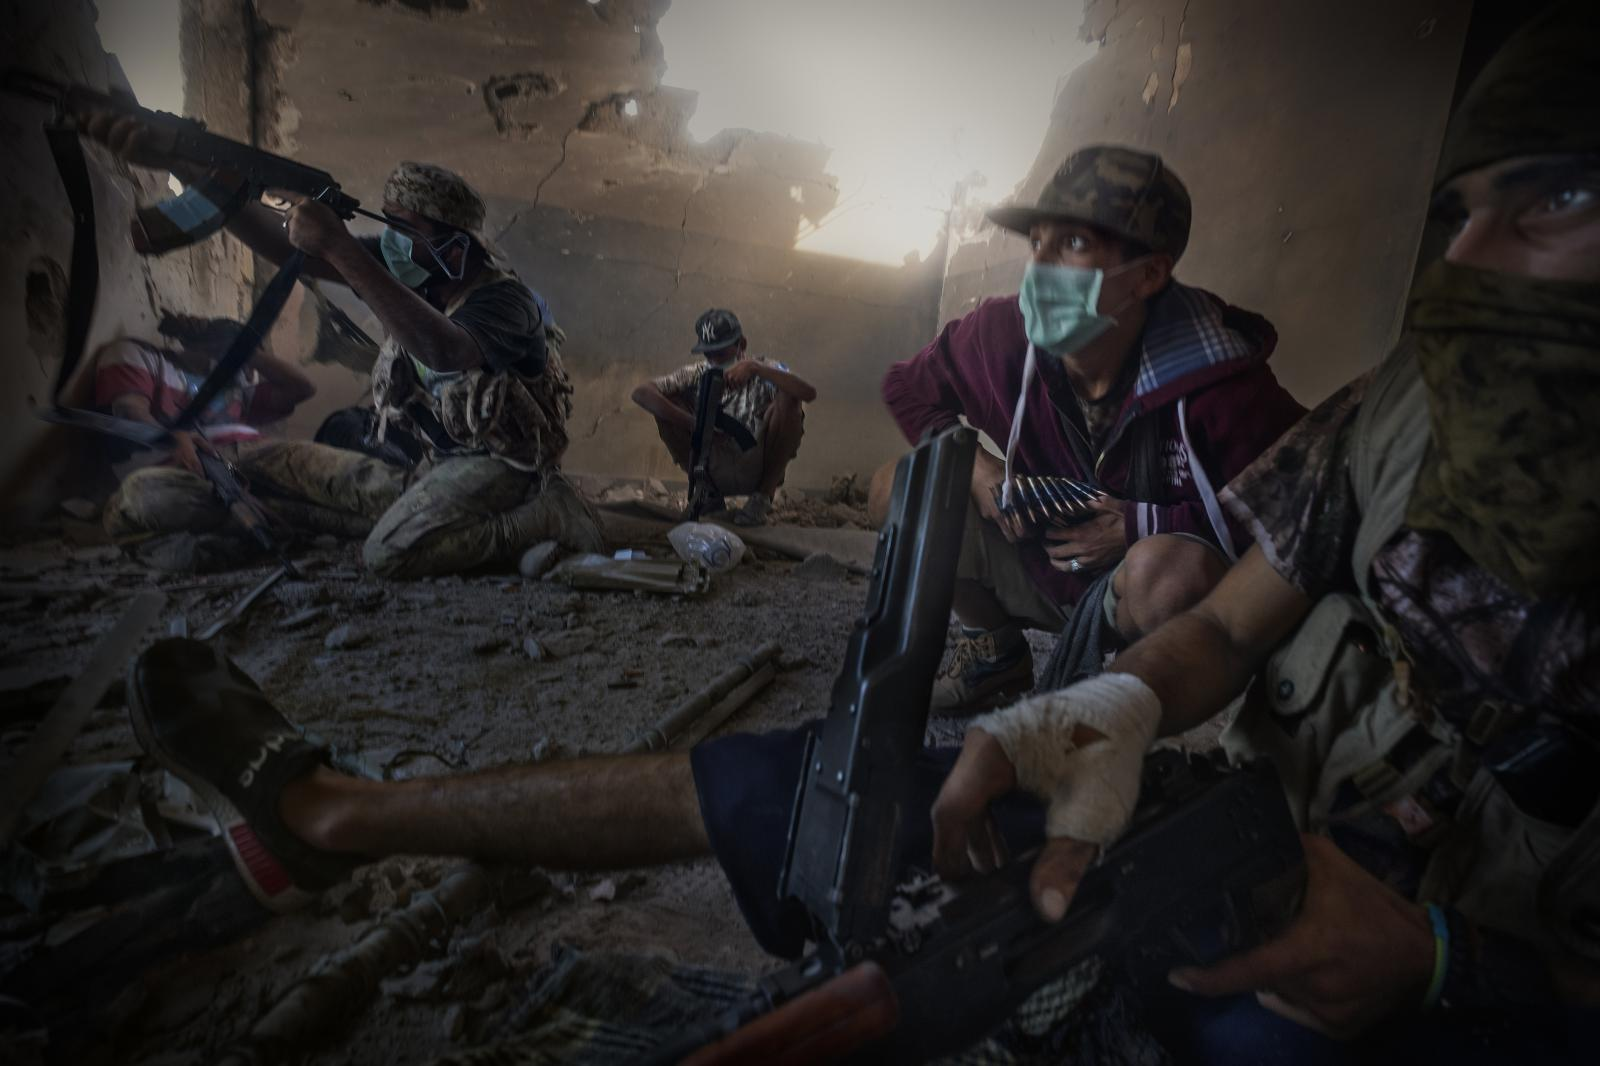 Soldiers use masks to be able breathe in the heavy gunpowder air produced by the multitude of shots fired inside a building during very intense and drawn-out fighting against ISIS, in Sirte (2016).